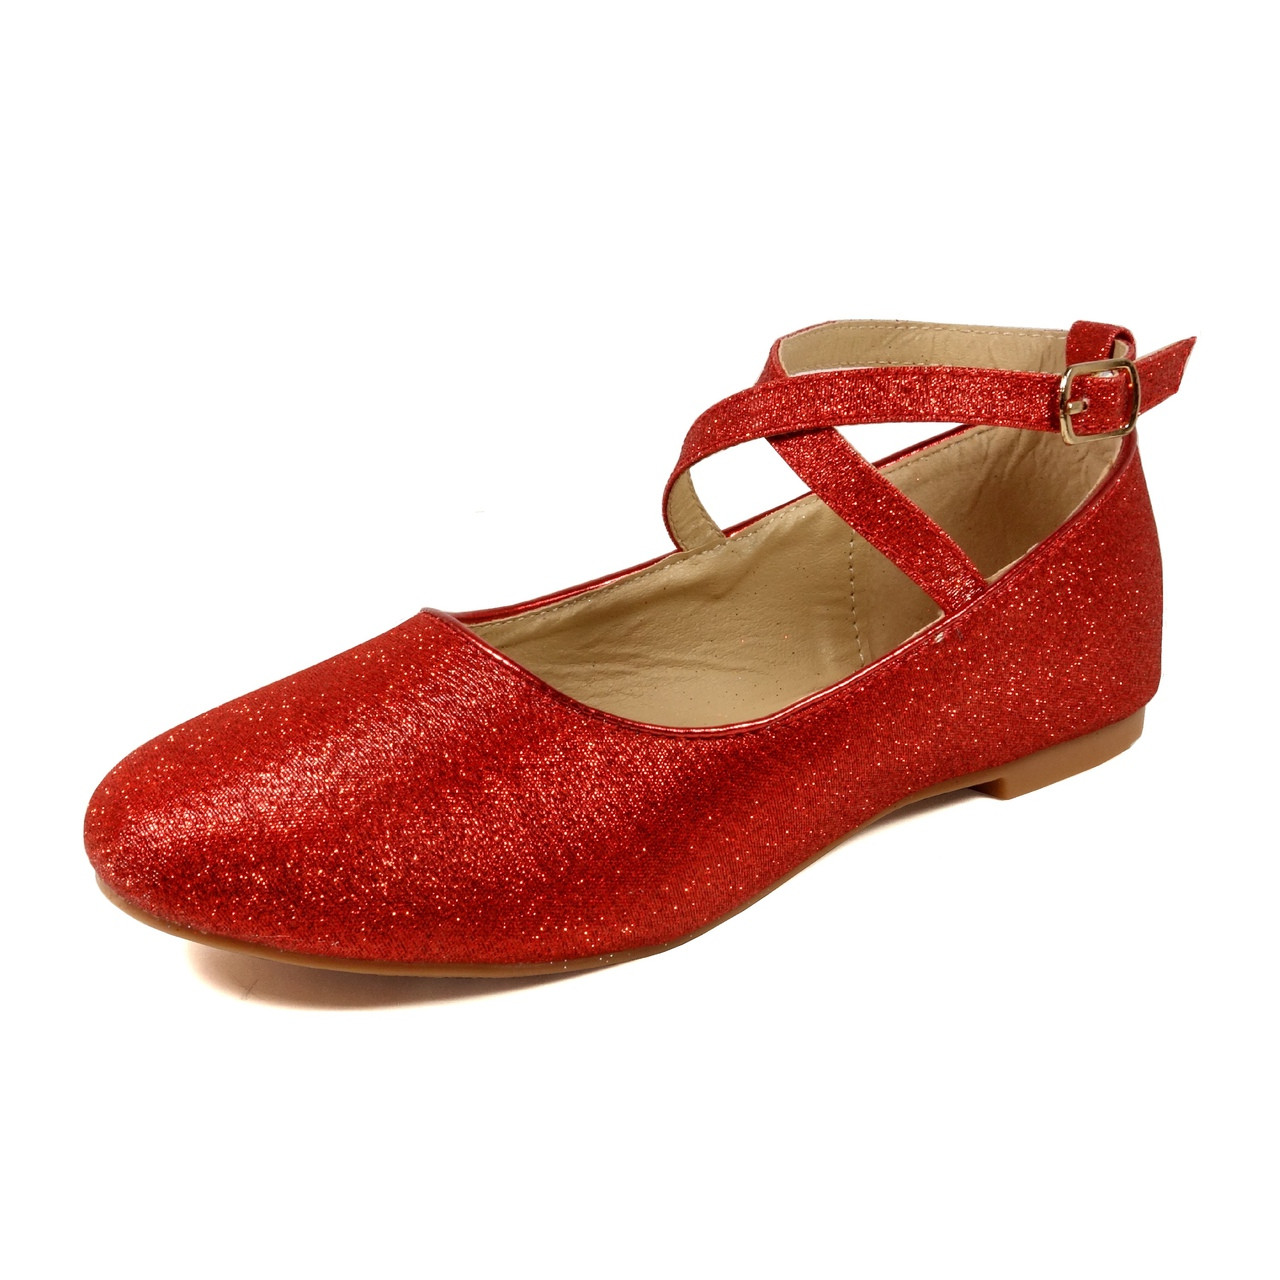 Nova Utopia Toddler Little Girls Flat Shoes - NFGF041 Red Glitter ... 5b49786feb